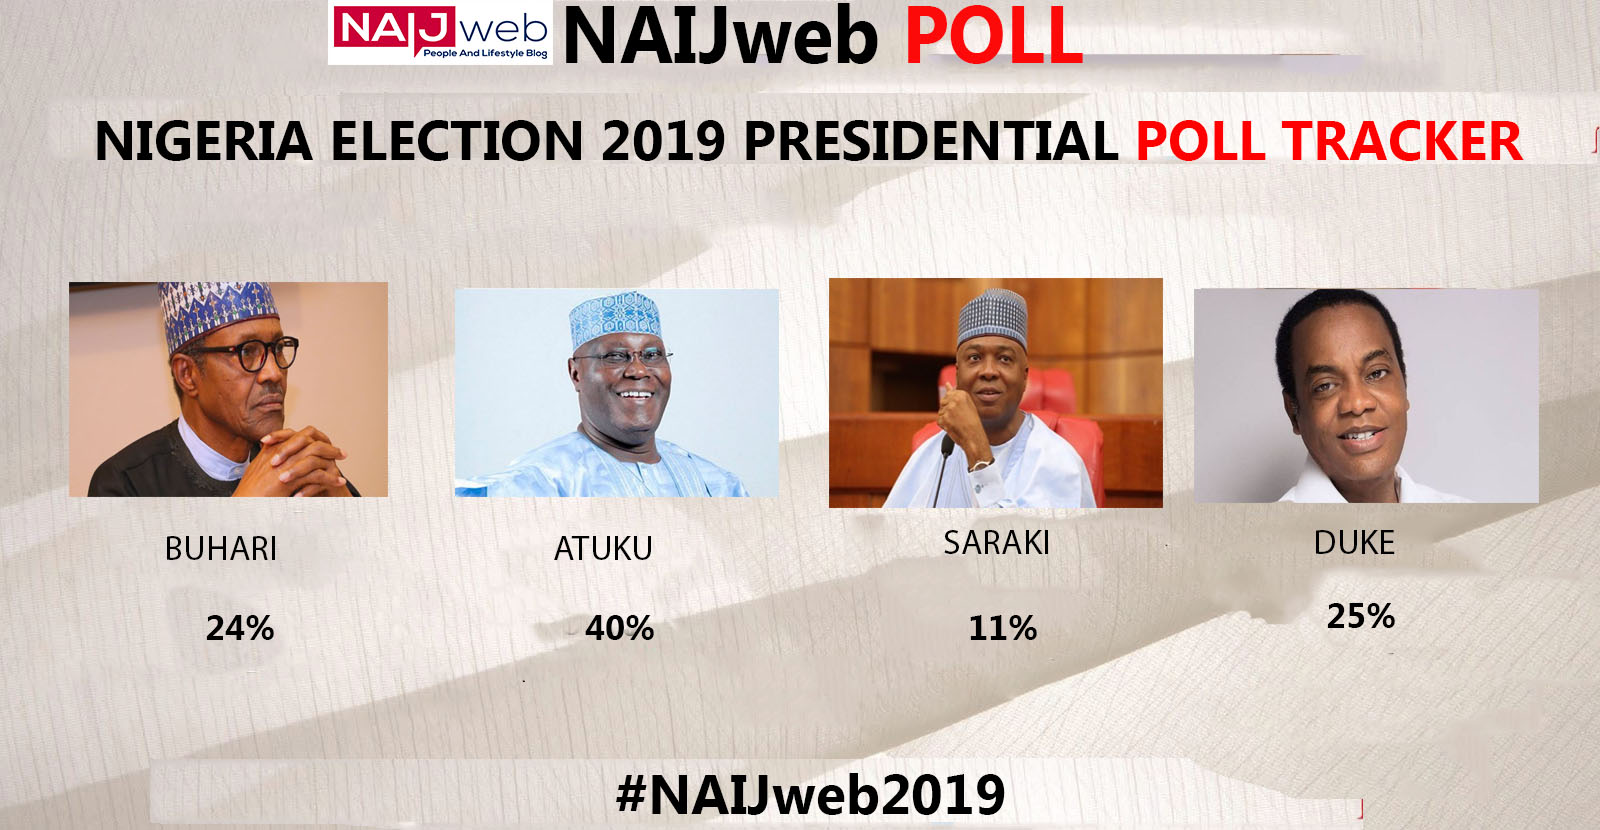 Nigeria 2019 Election POLL Tracker